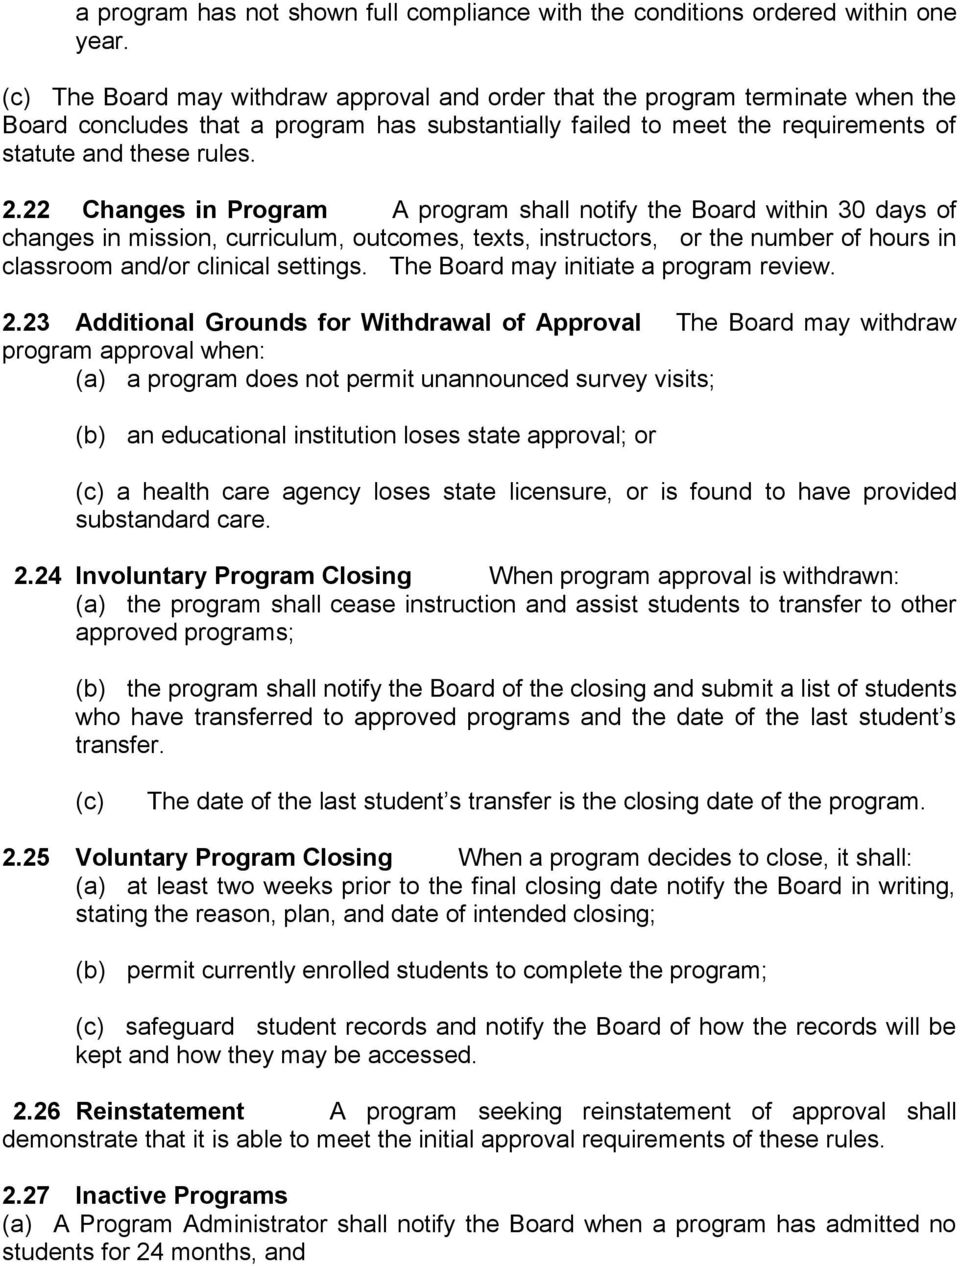 22 Changes in Program A program shall notify the Board within 30 days of changes in mission, curriculum, outcomes, texts, instructors, or the number of hours in classroom and/or clinical settings.